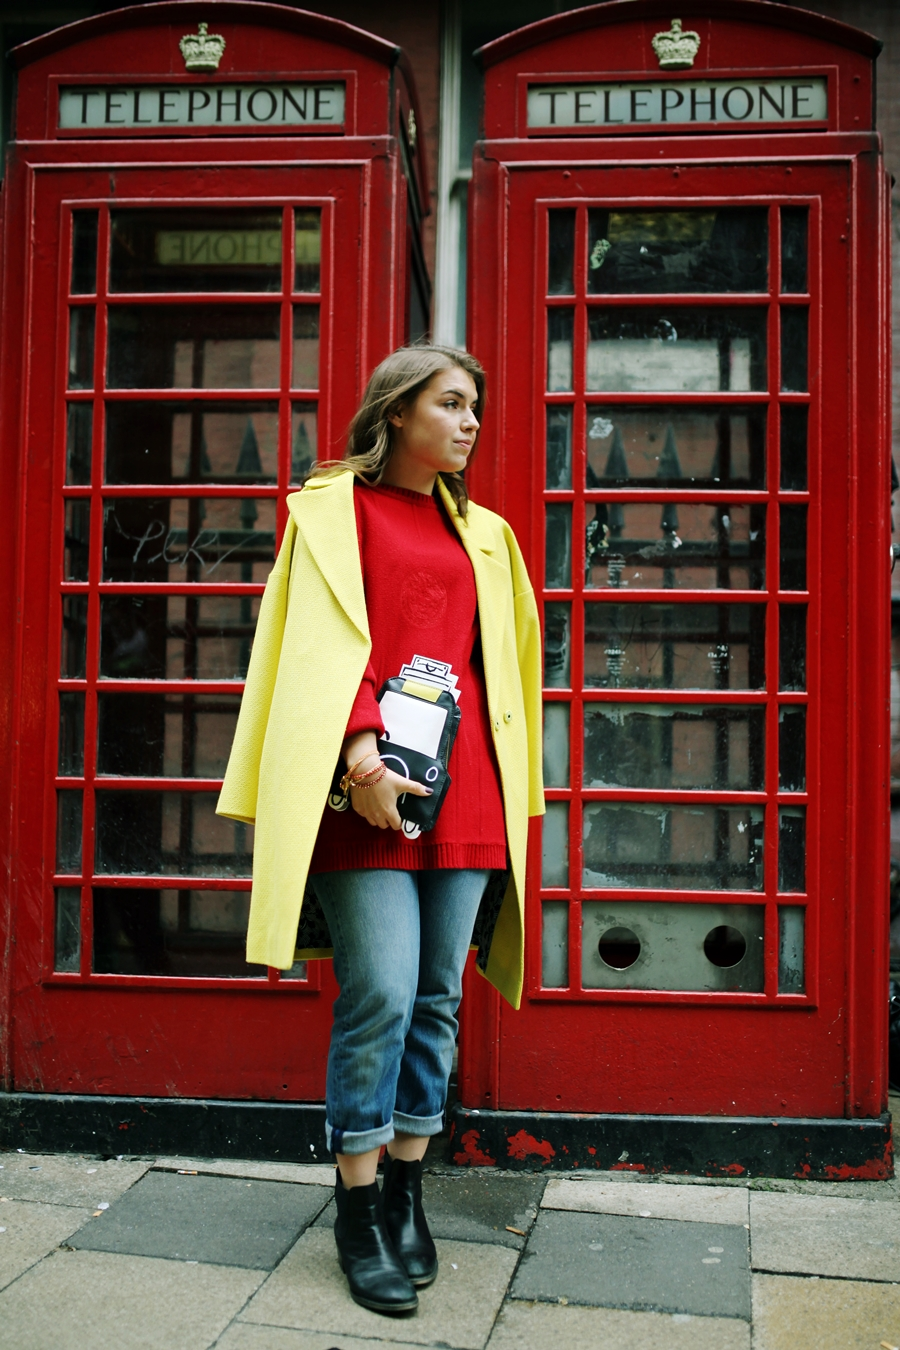 london telefon zelle fashion week